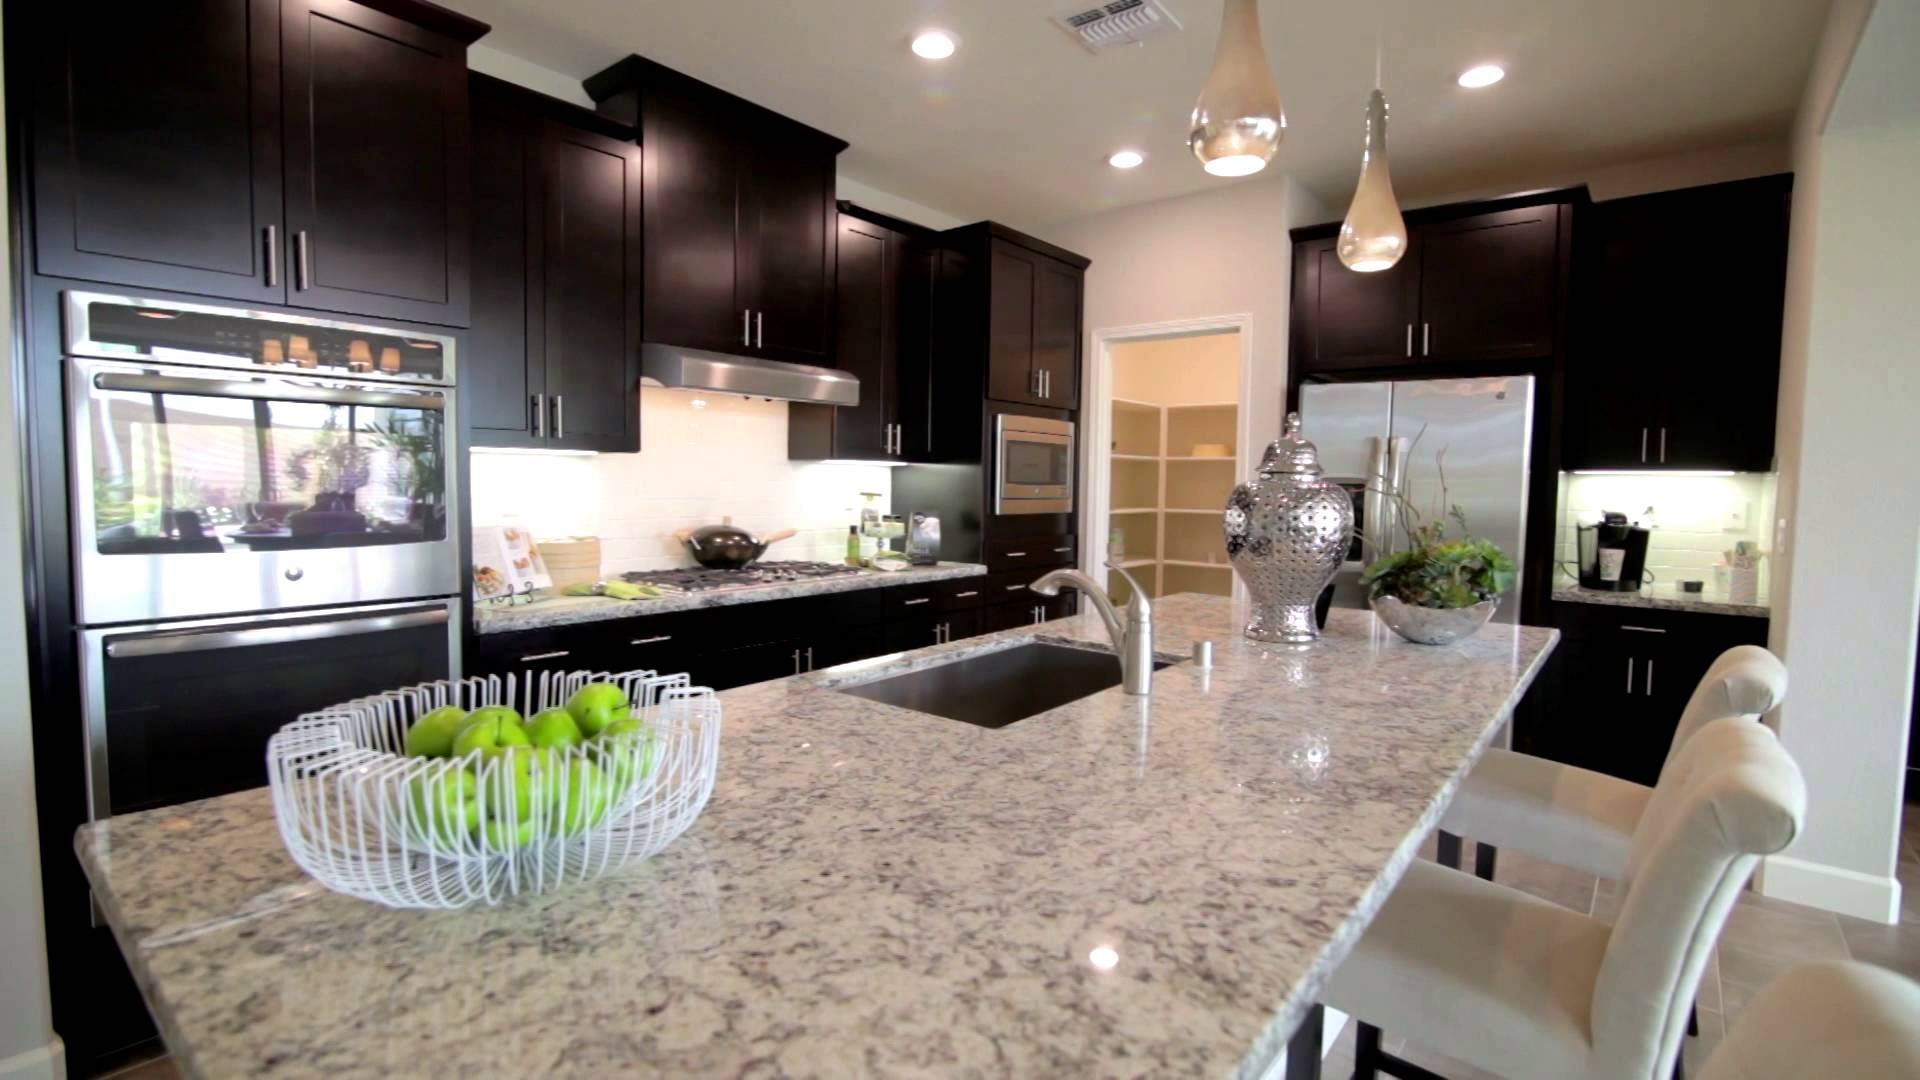 Kitchen Remodeling Sacramento Model Glamorous The Chelsea Model Home At Carrington  New Solar Homeslennar . 2017